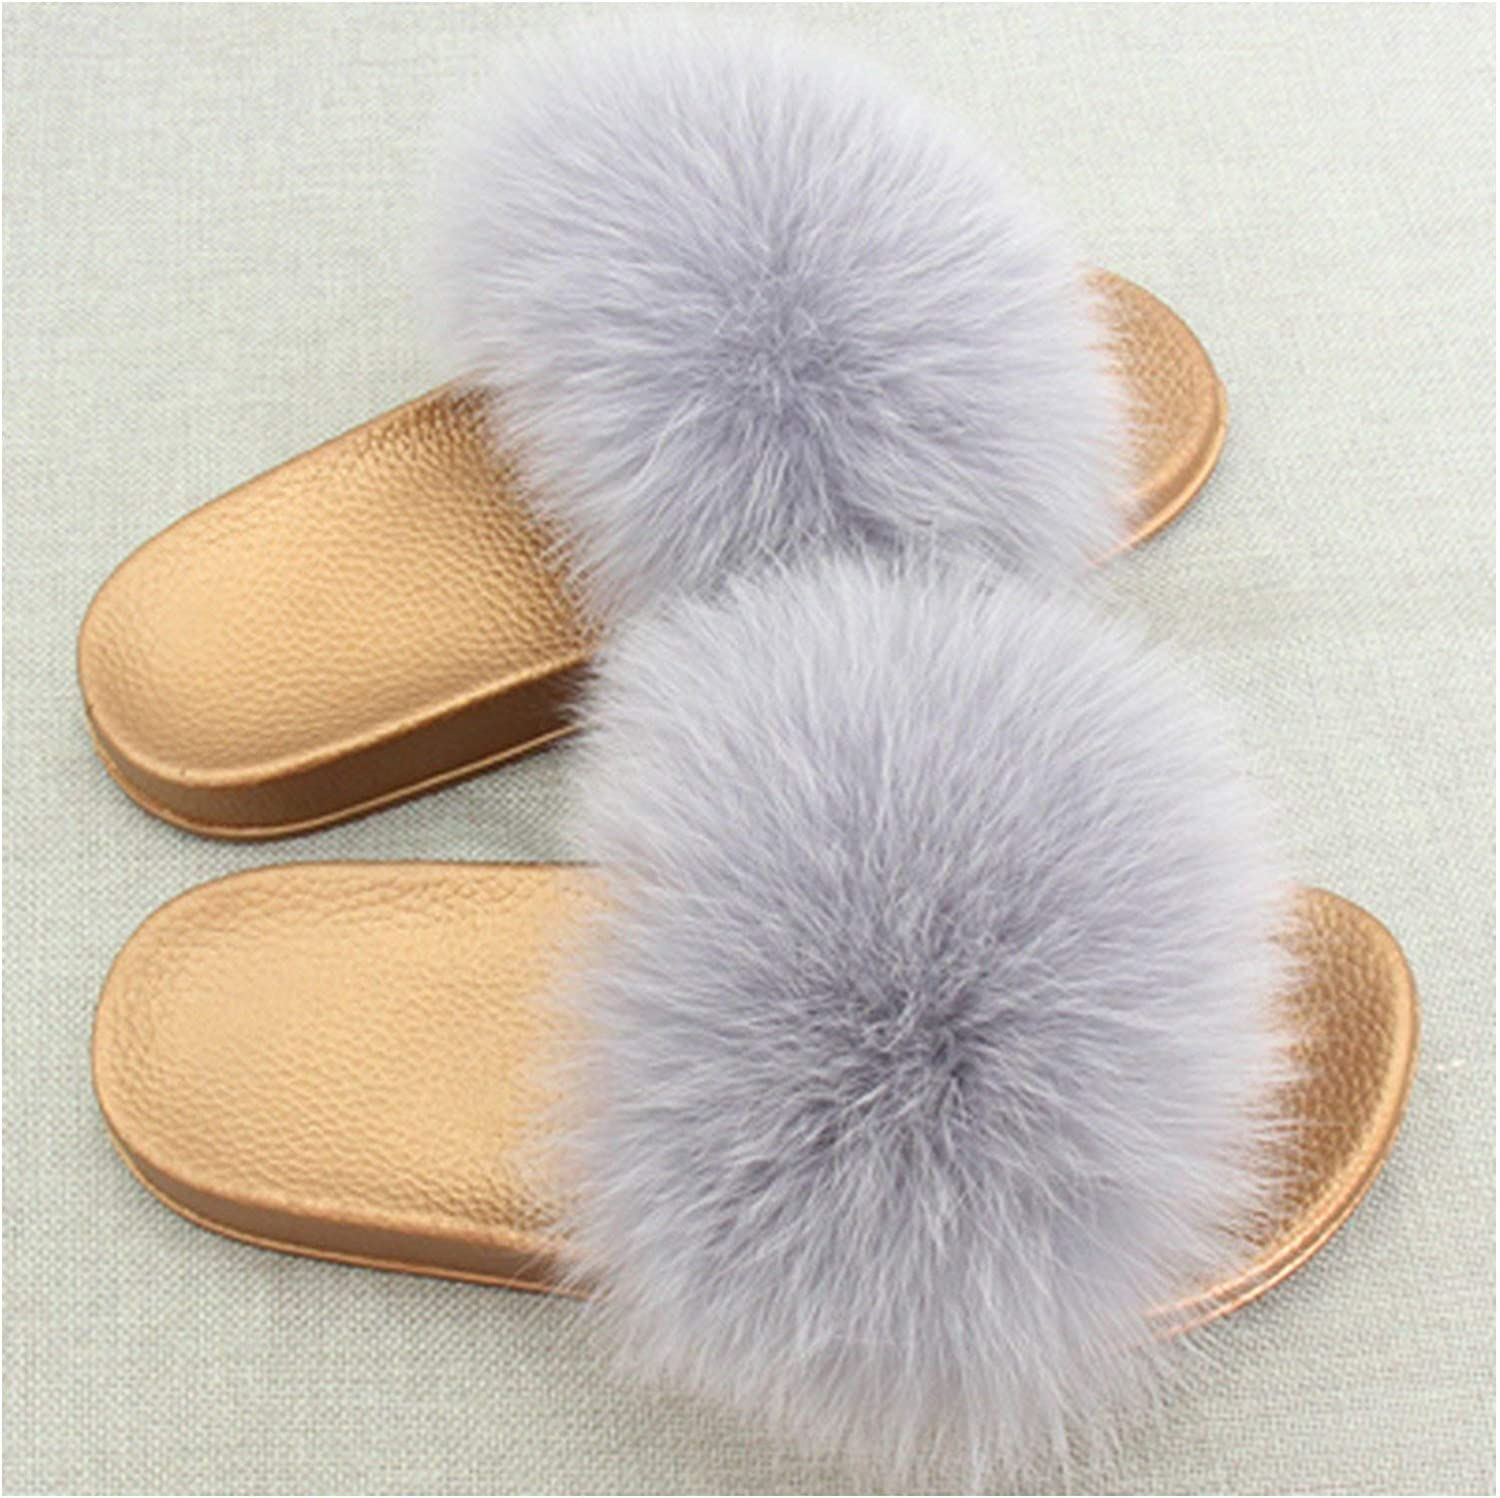 Leifun Fox Fur Slippers Flip Flops Furry Slippers shoes Cute Fluffy Slippers Chaussons Slip On Slides